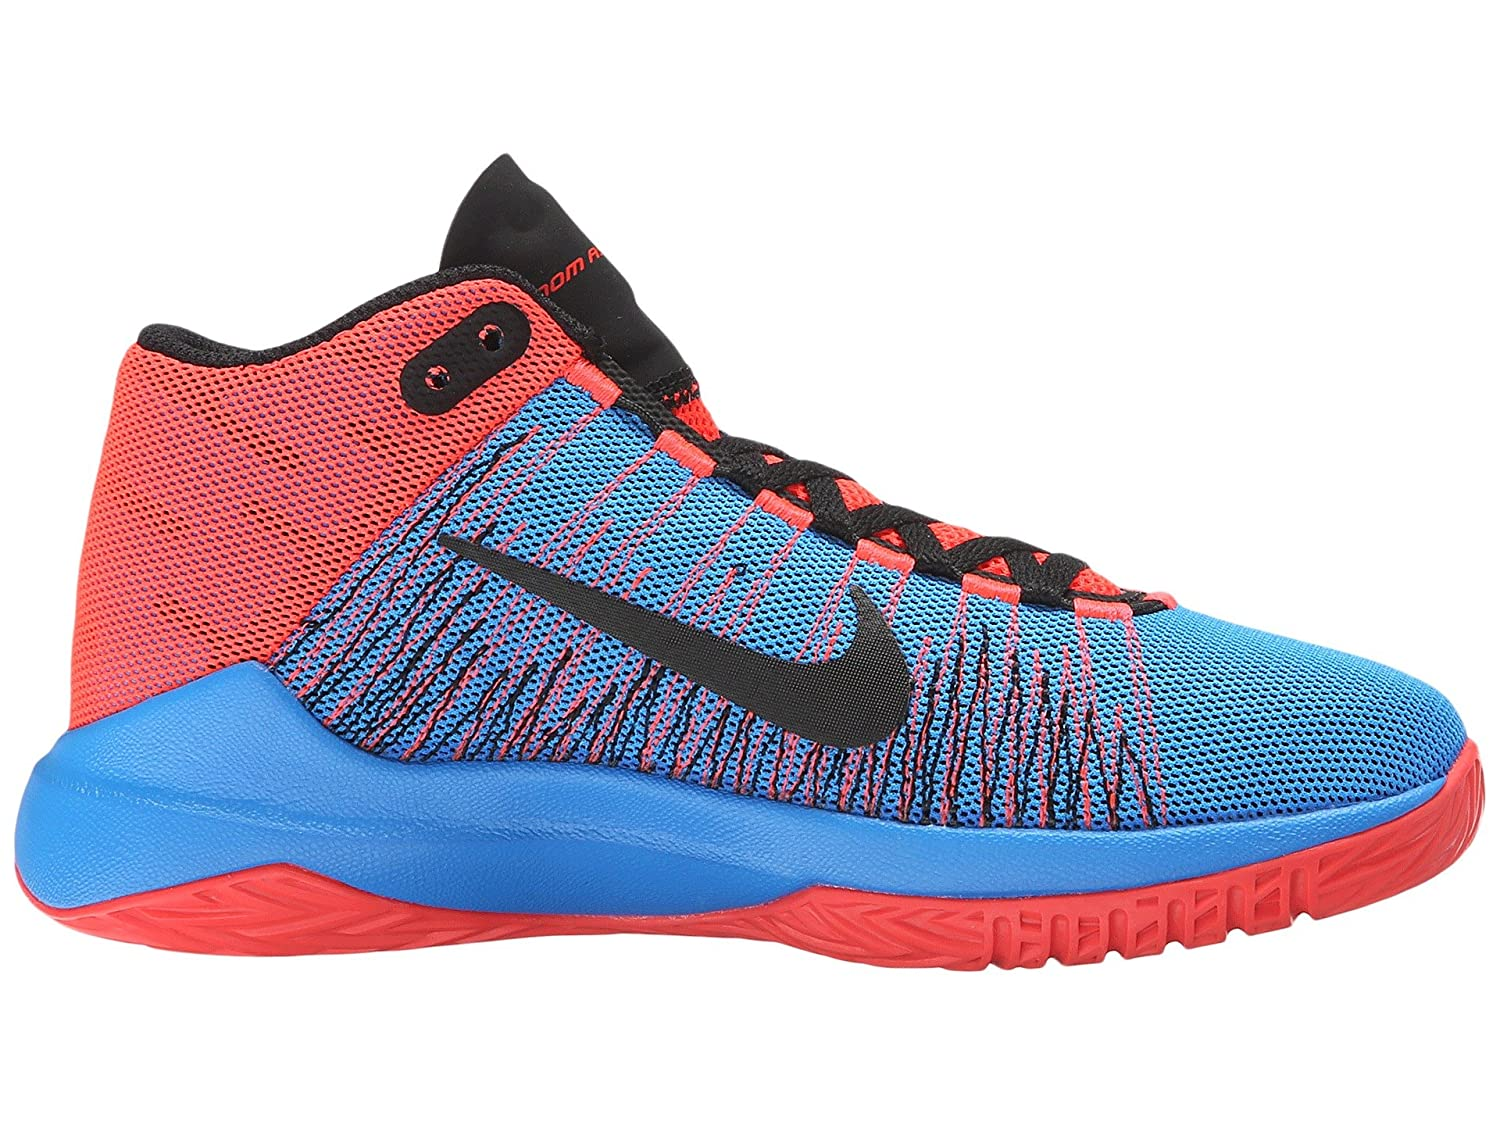 uk availability f8cc8 3c439 Amazon.com   Nike Zoom Ascention, Blue Orange, 6.5   Basketball